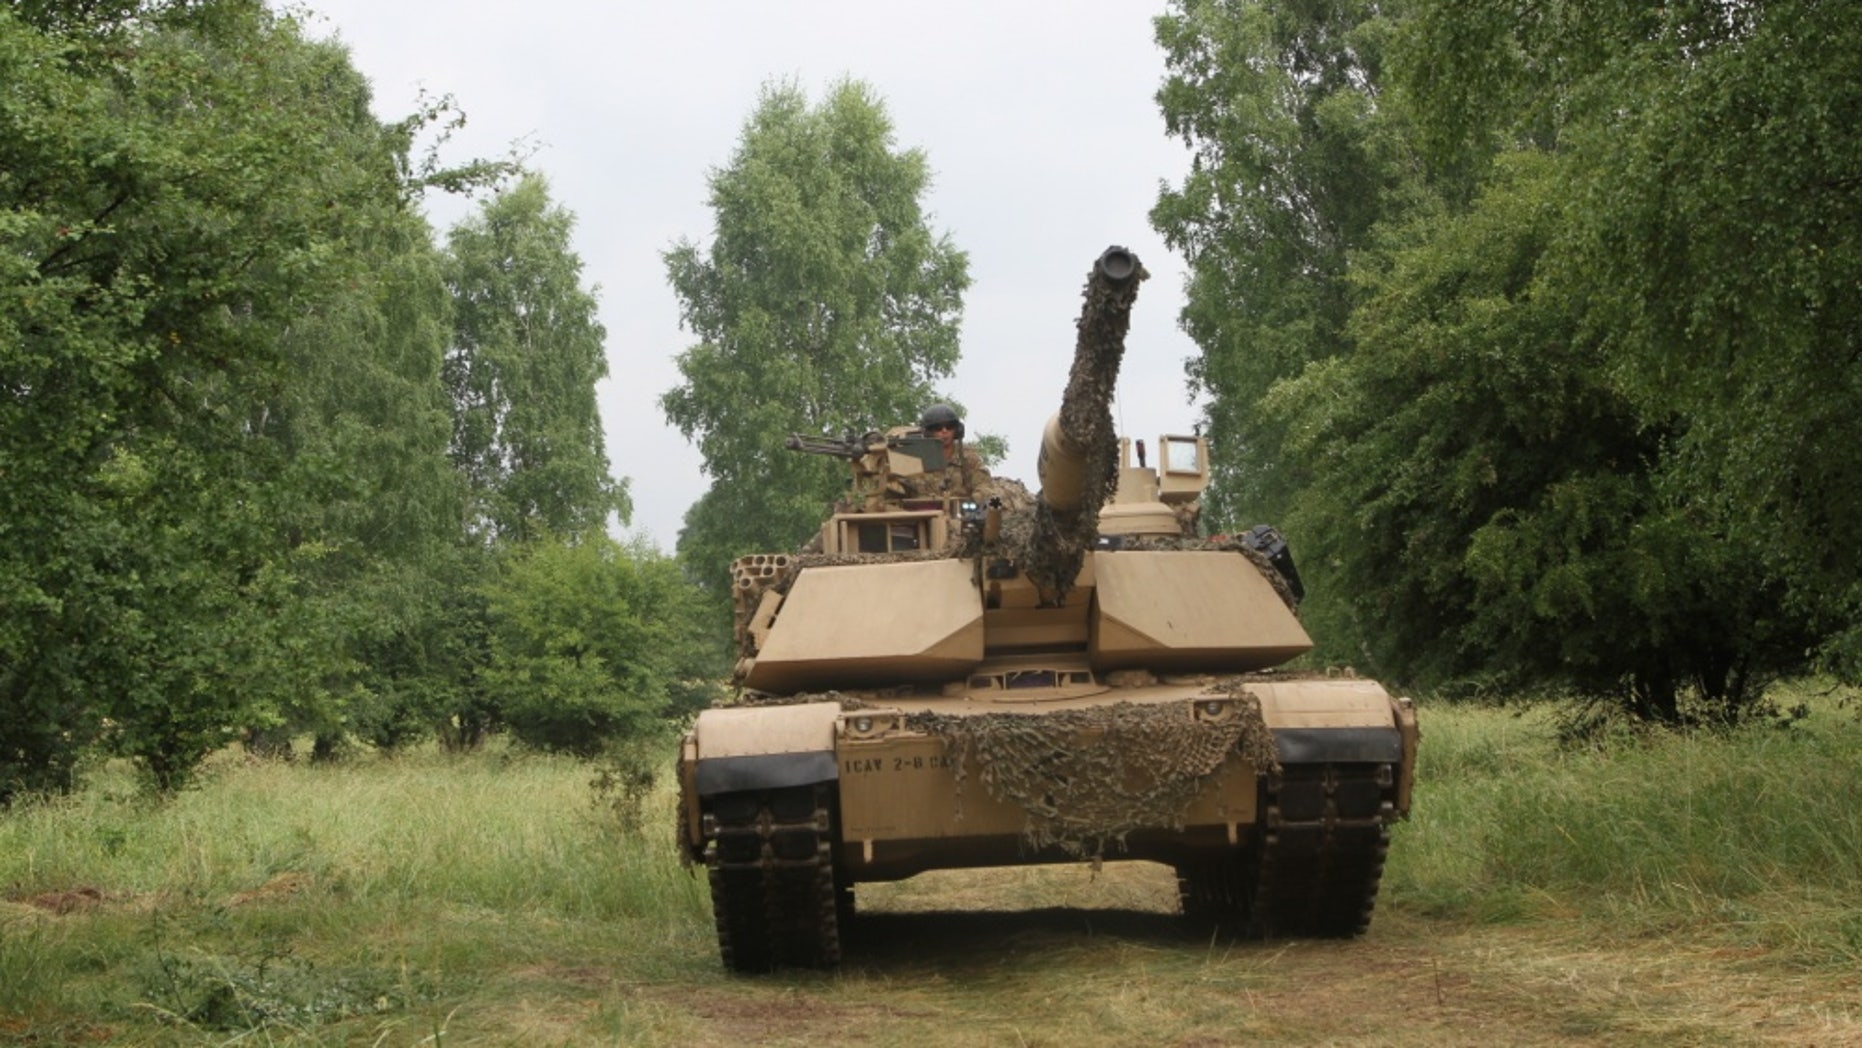 "File photo - Tank crewmen from Bravo Company ""Eager Arms"", 2nd Battalion, 8th Regiment, 1st Armored Brigade Combat Team, 1st Cavalry Division maneuver a M1A2 Abrams tank during their company-level situational training exercise in preparation for Saber Strike in Drawsko Pomorskie Training Area, Poland, on June 12, 2018. (U.S. Army National Guard photo by Staff Sgt. Ron Lee, 382nd Public Affairs Detachment, 1ABCT, 1CD/Released)"